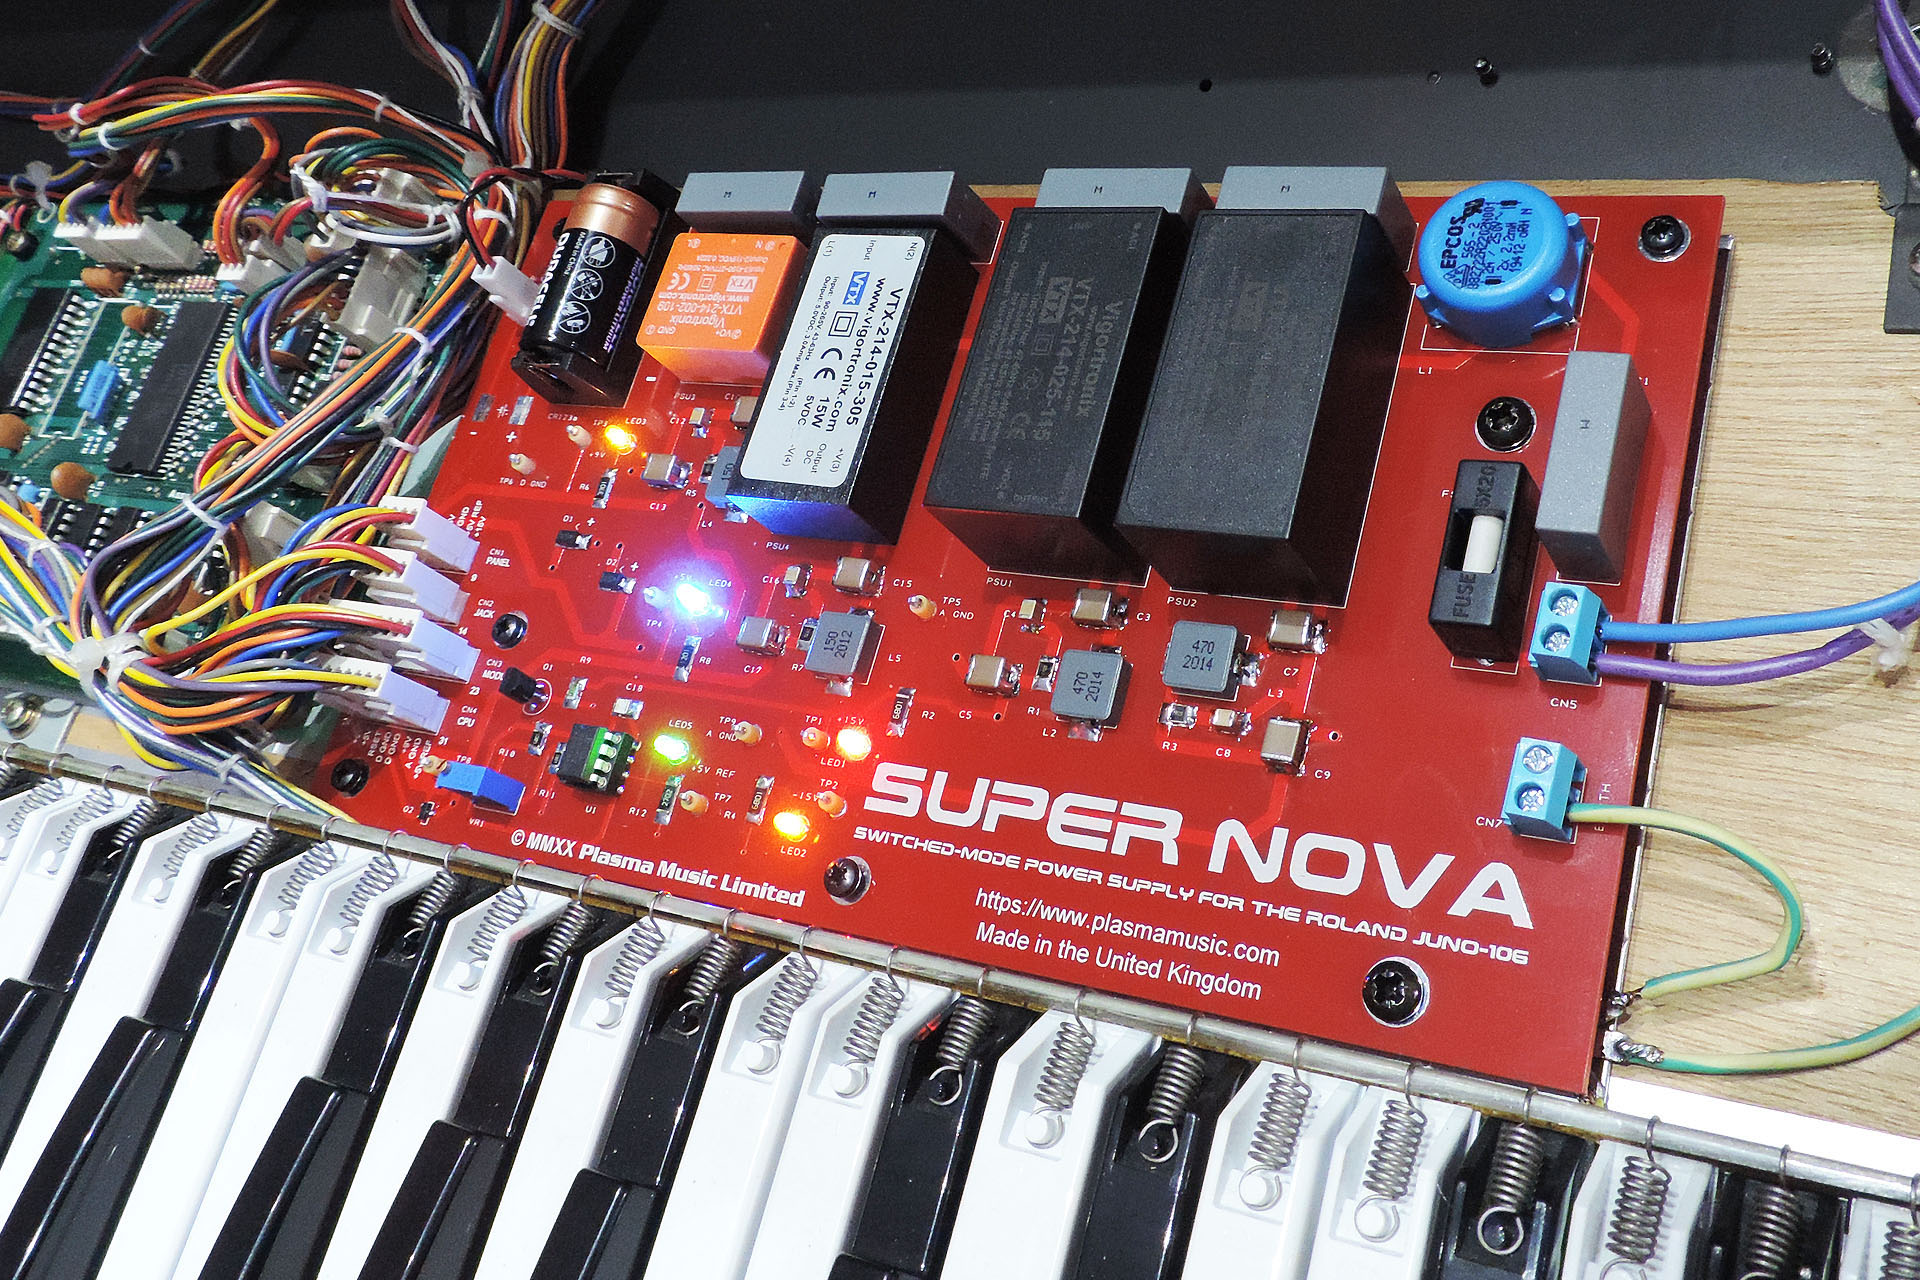 Super Nova installed and powered up